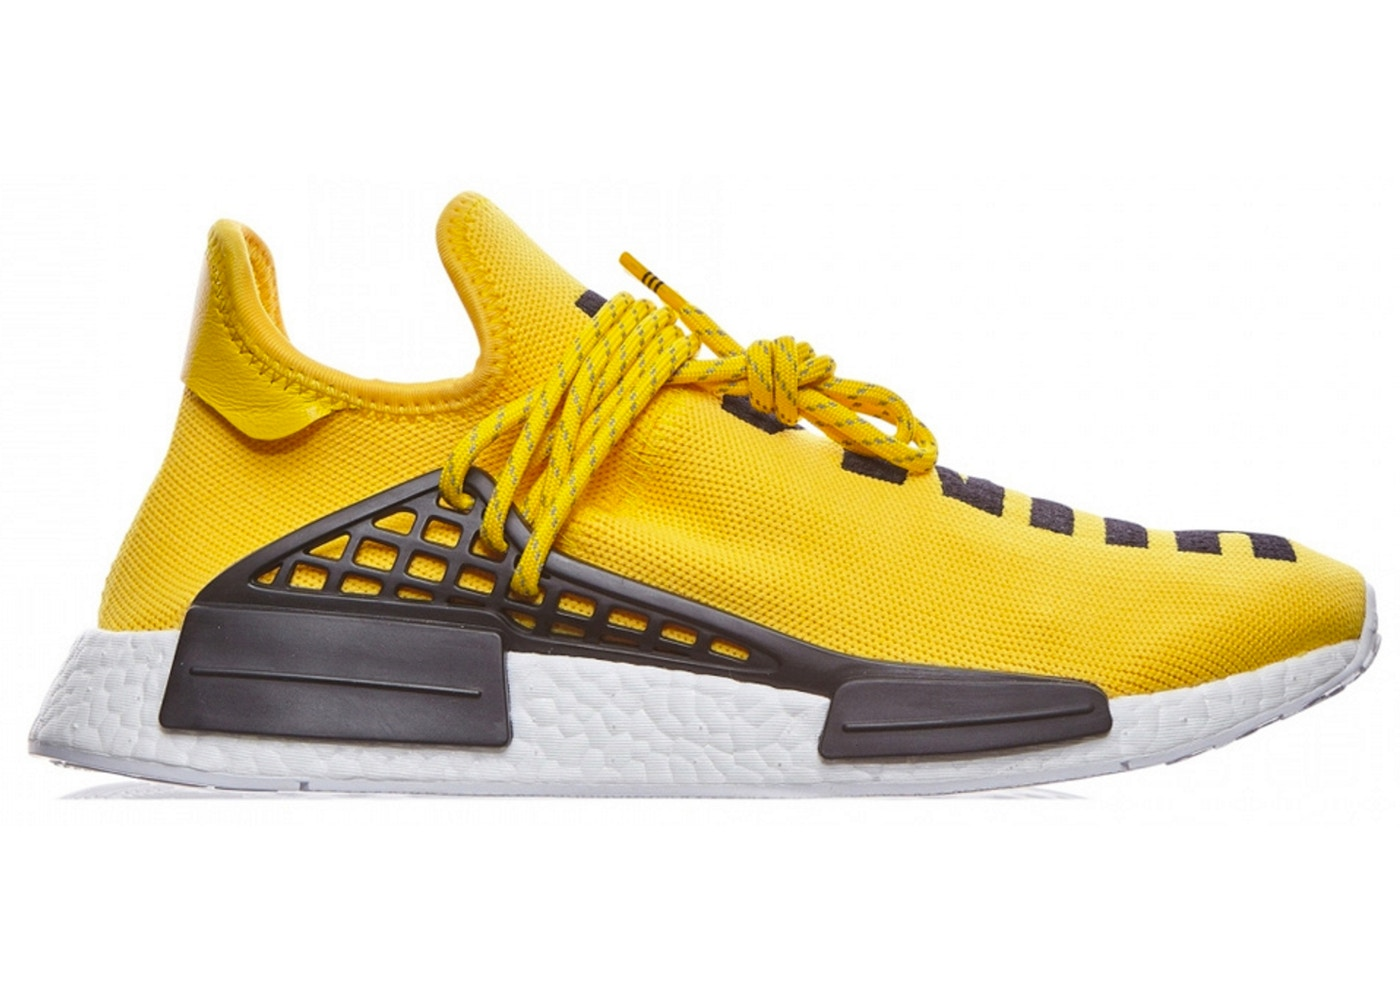 new product 2b6c2 8b7da Buy adidas NMD HU Shoes & Deadstock Sneakers